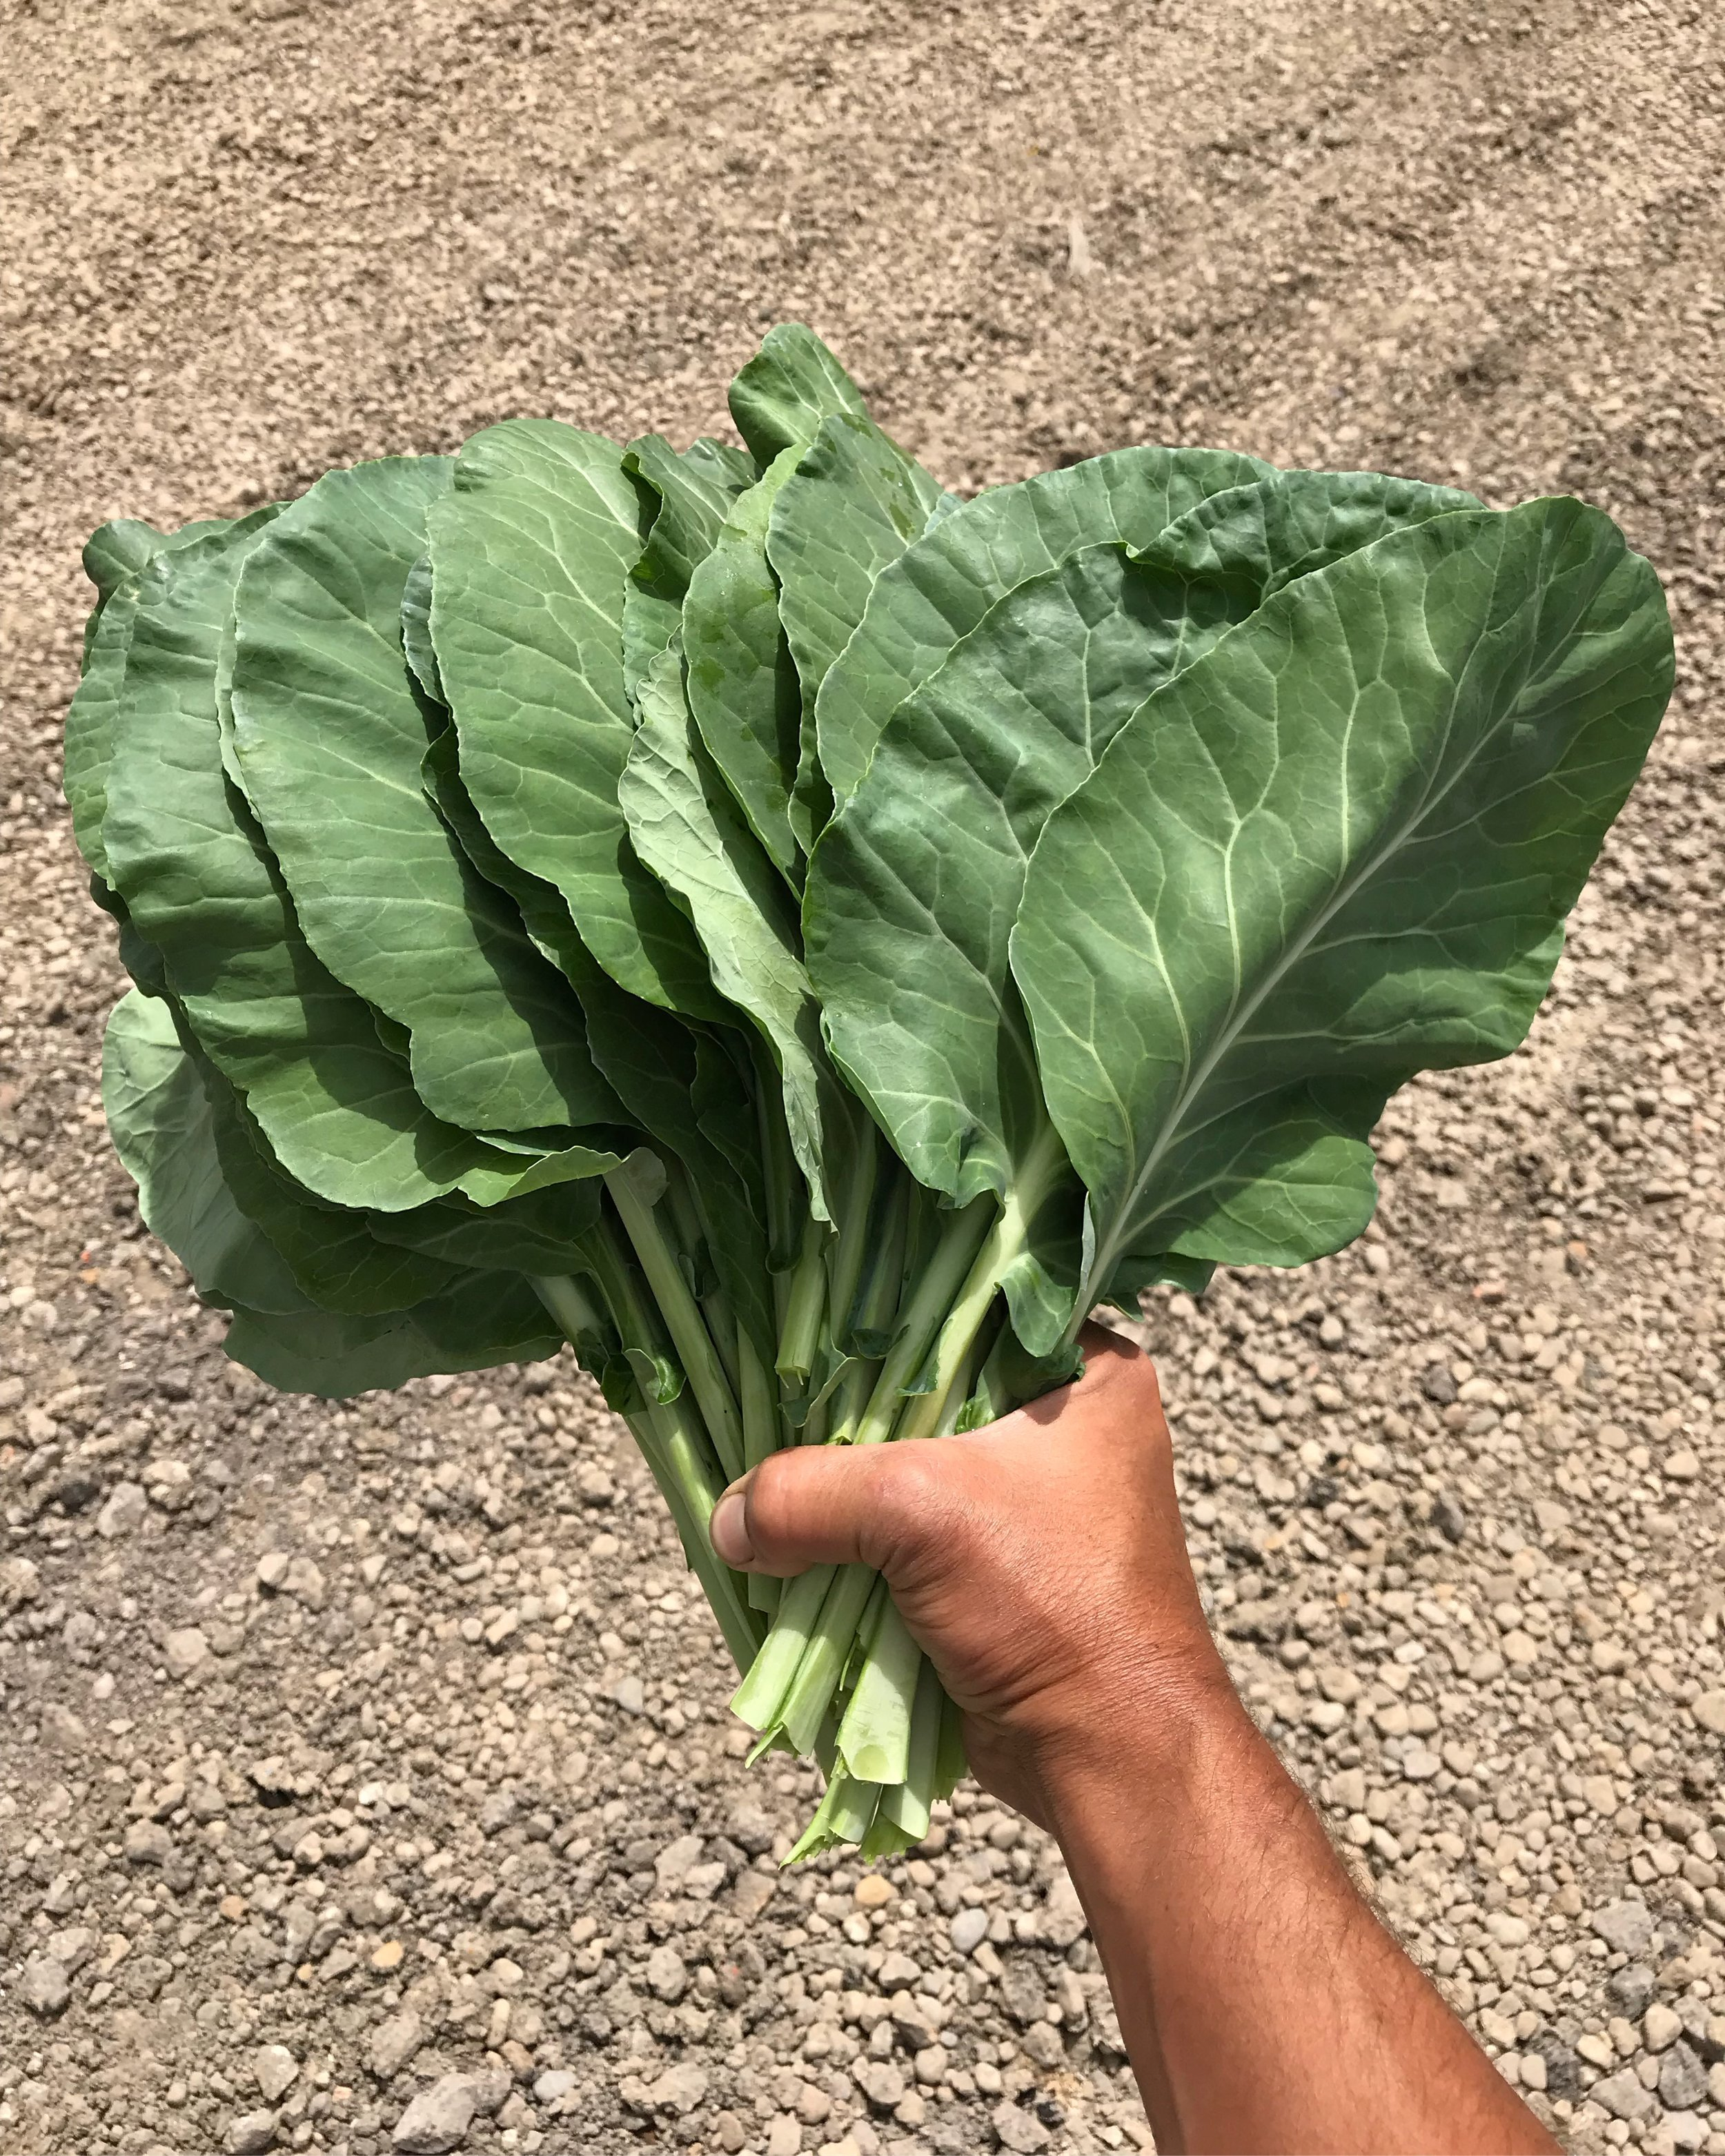 Collard powered!